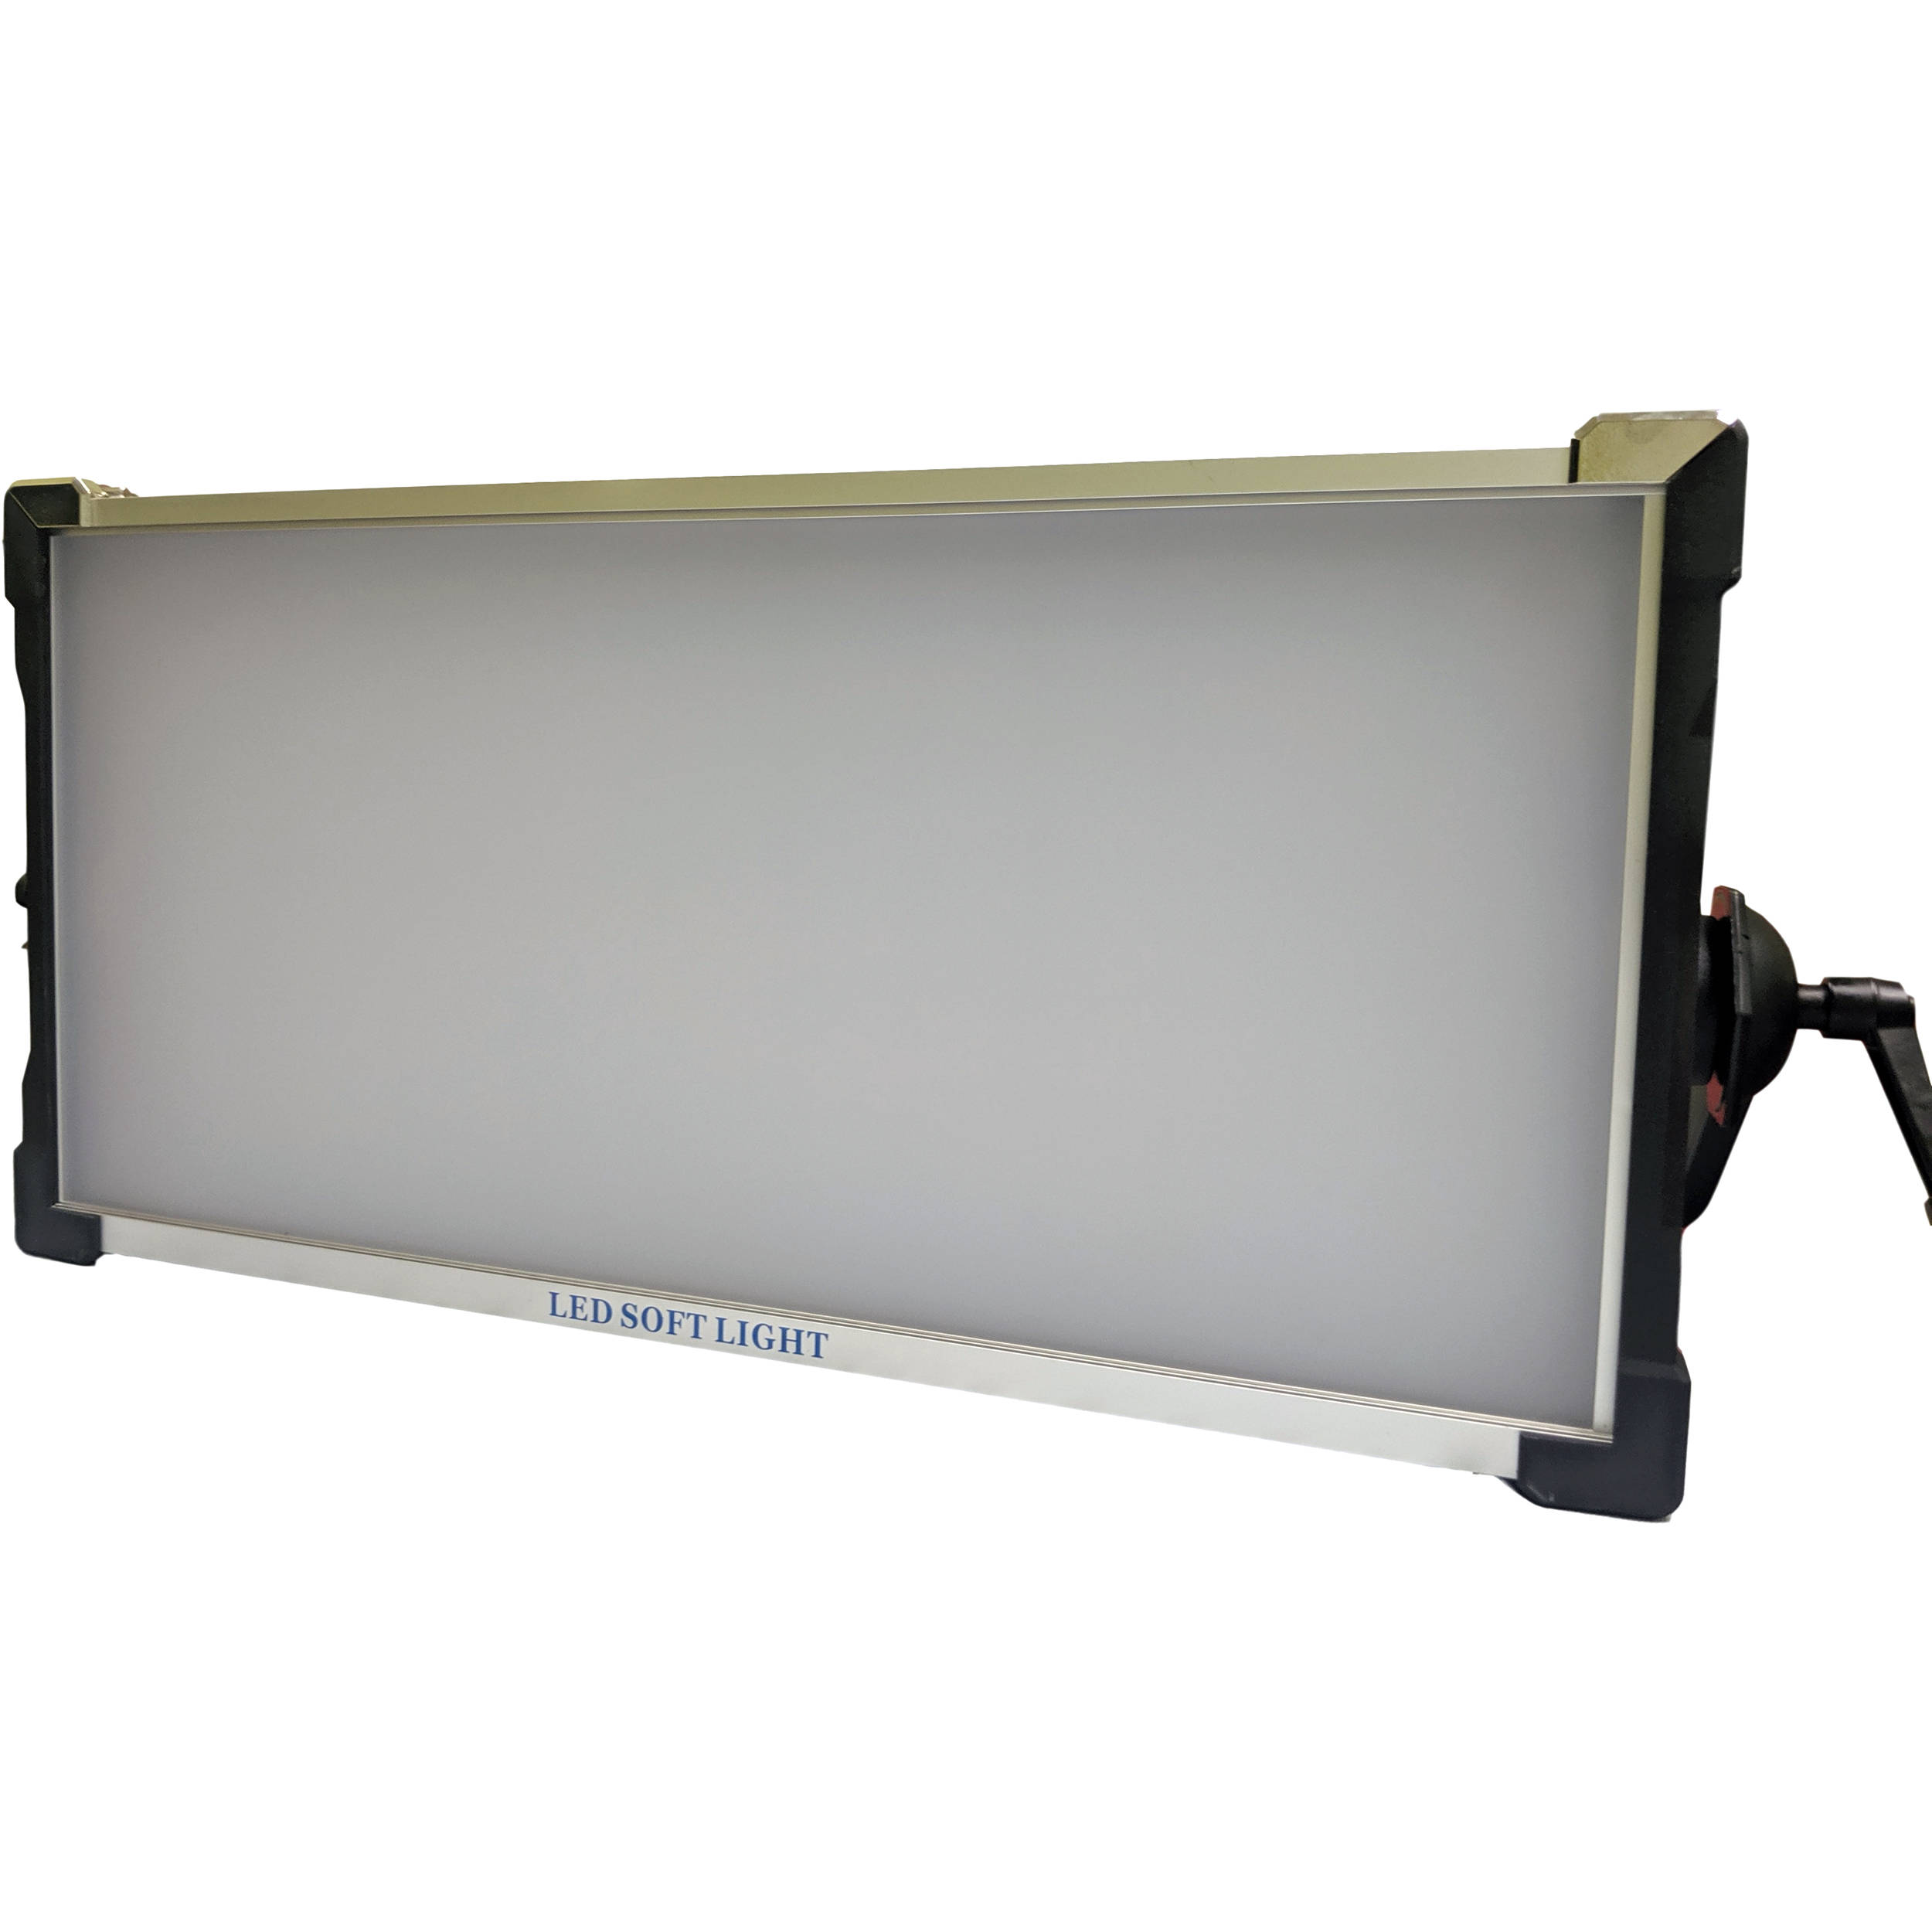 Trigyn Vari Light Rgb W Led 2x1 Soft Lighting Panel With Gold Mount Battery Plates